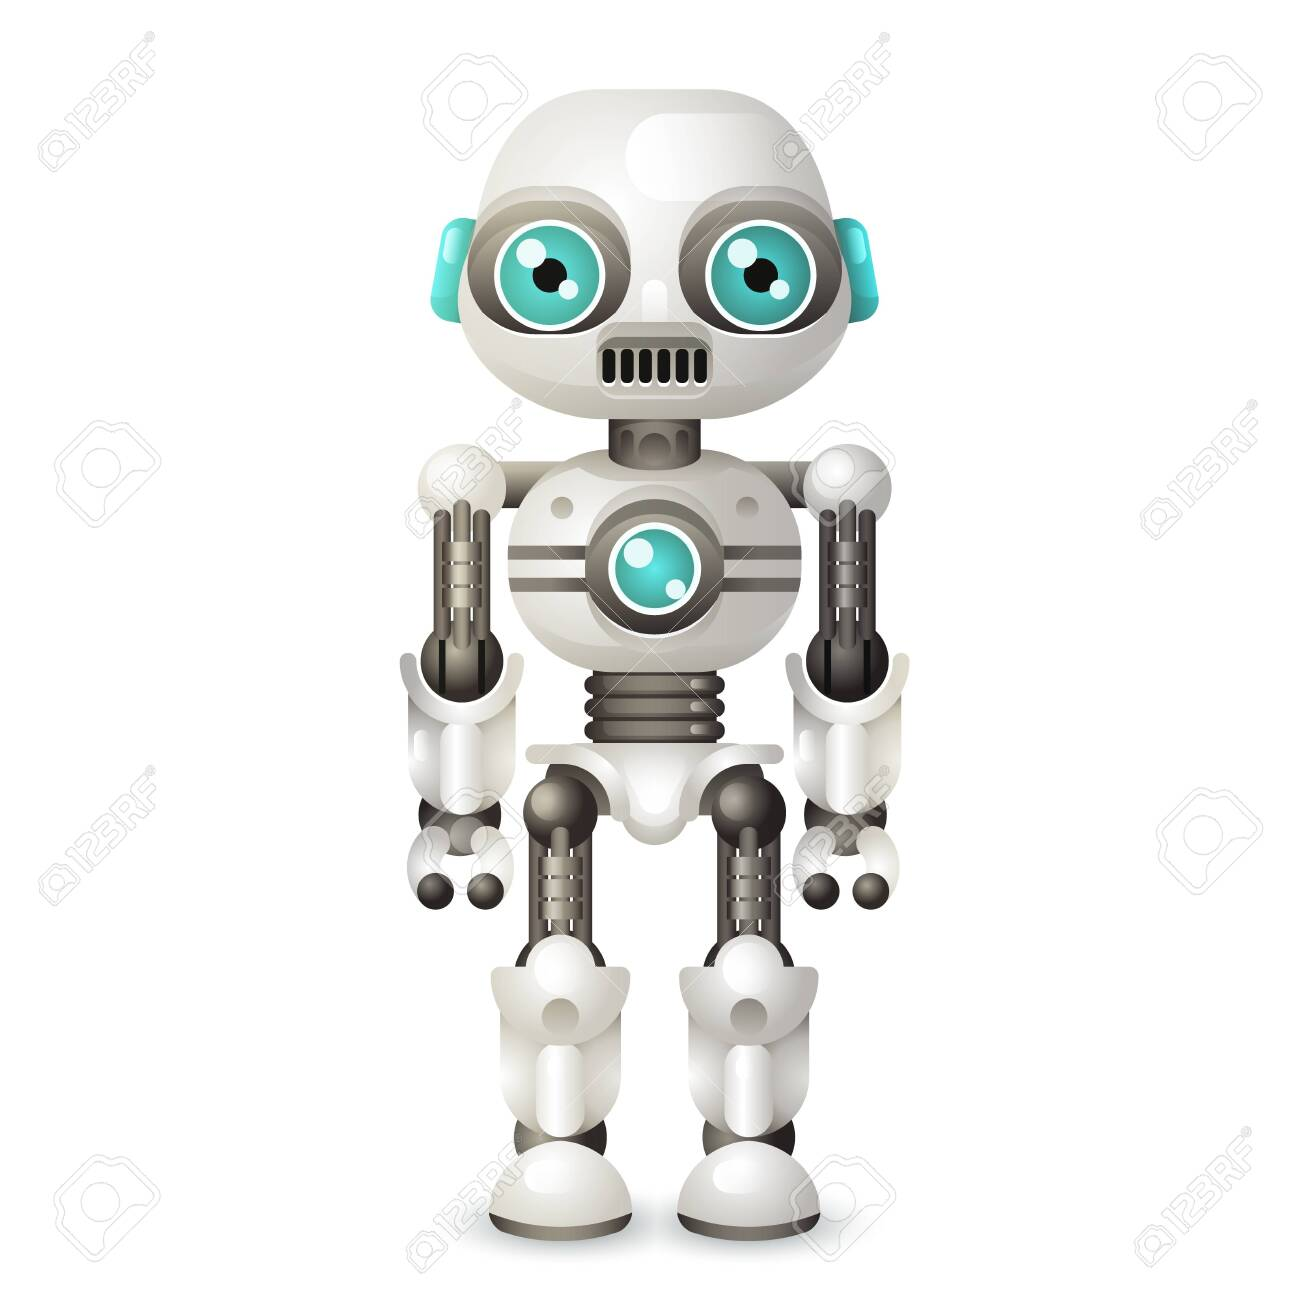 Modern Android Robot Character Artificial Intelligence Isolated On ...